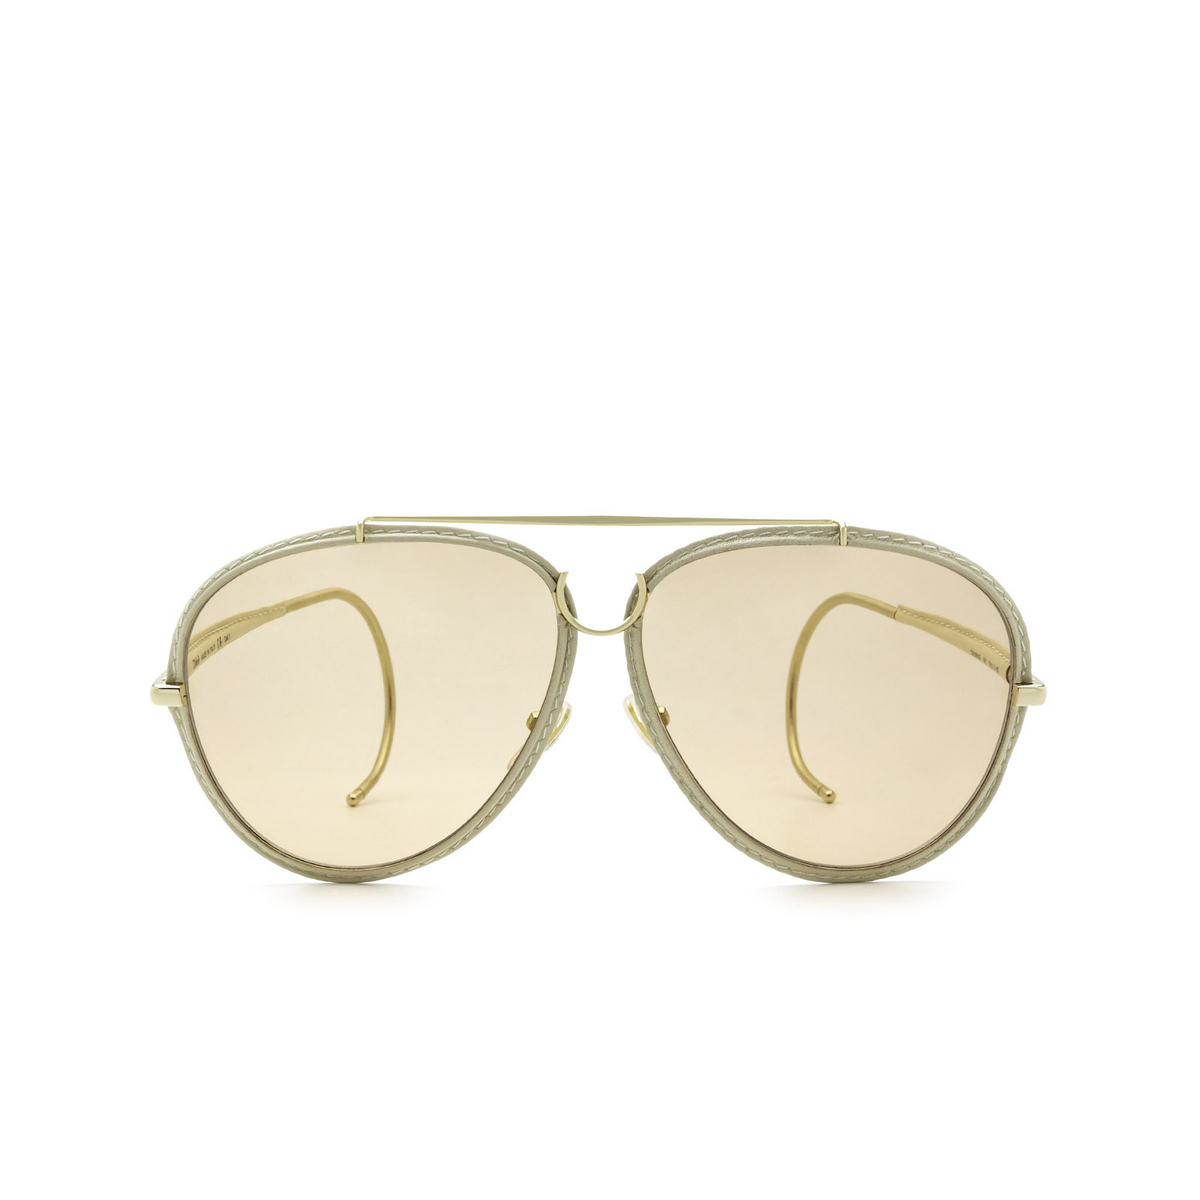 Chloé® Aviator Sunglasses: CH0080S color Gold 001 - front view.